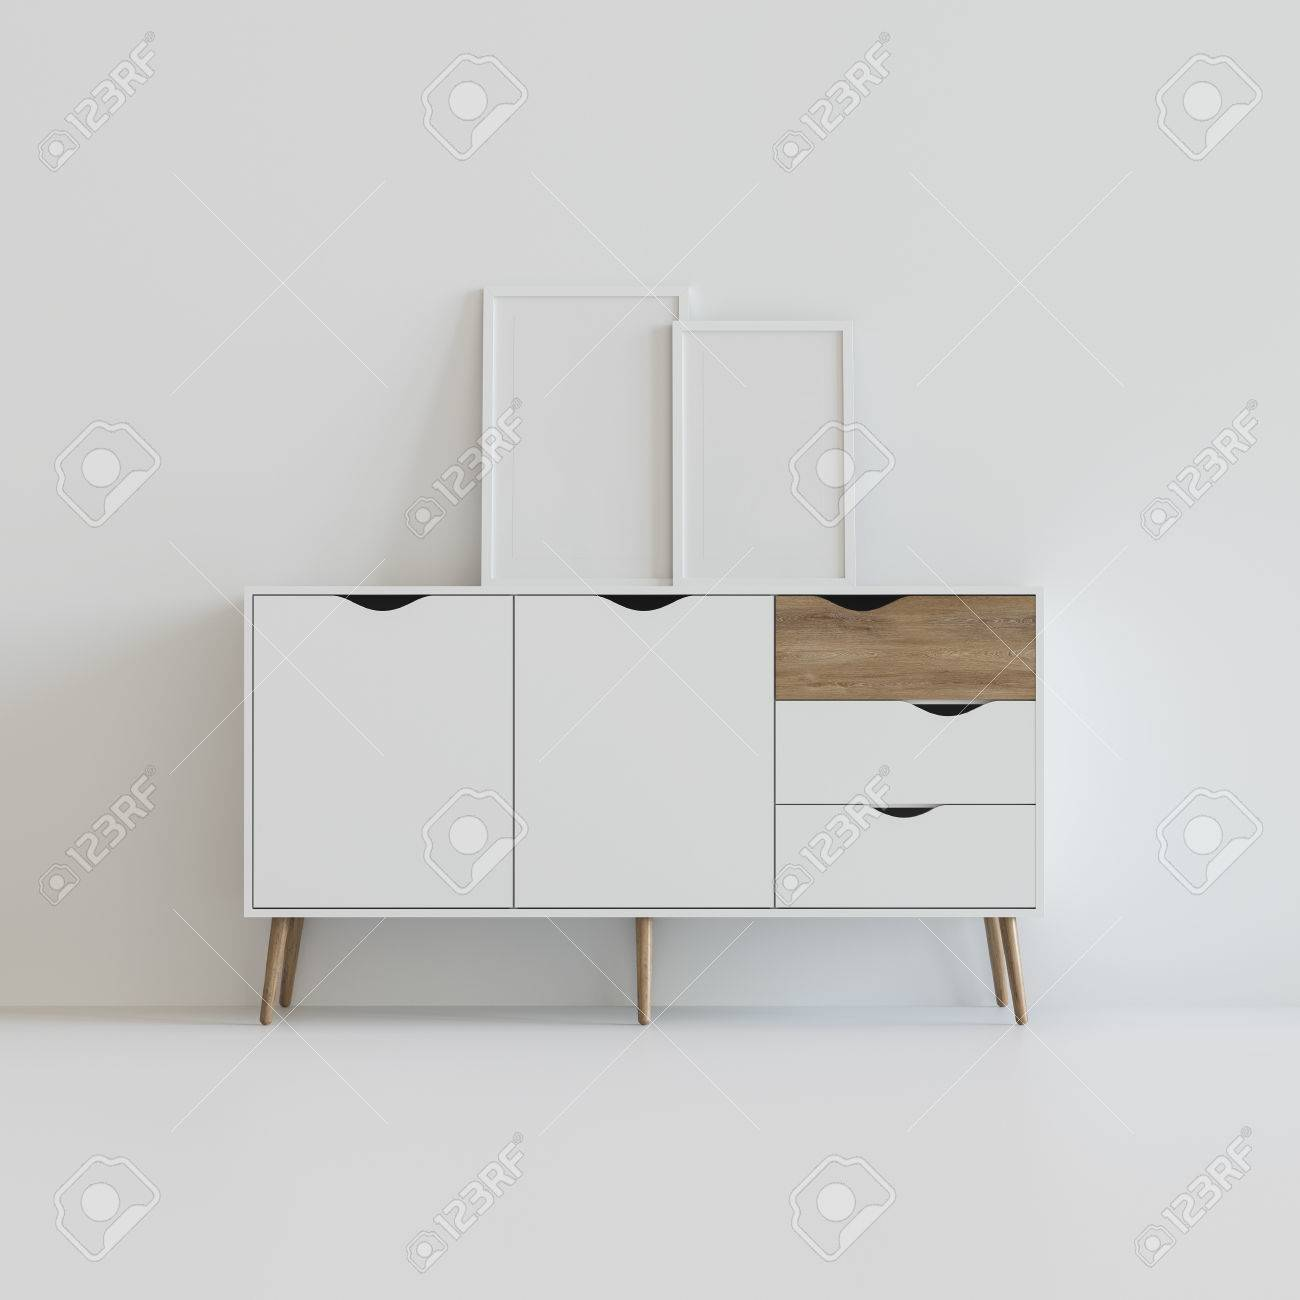 Drawer In White Space With Picture Frames On It Stock Photo, Picture ...